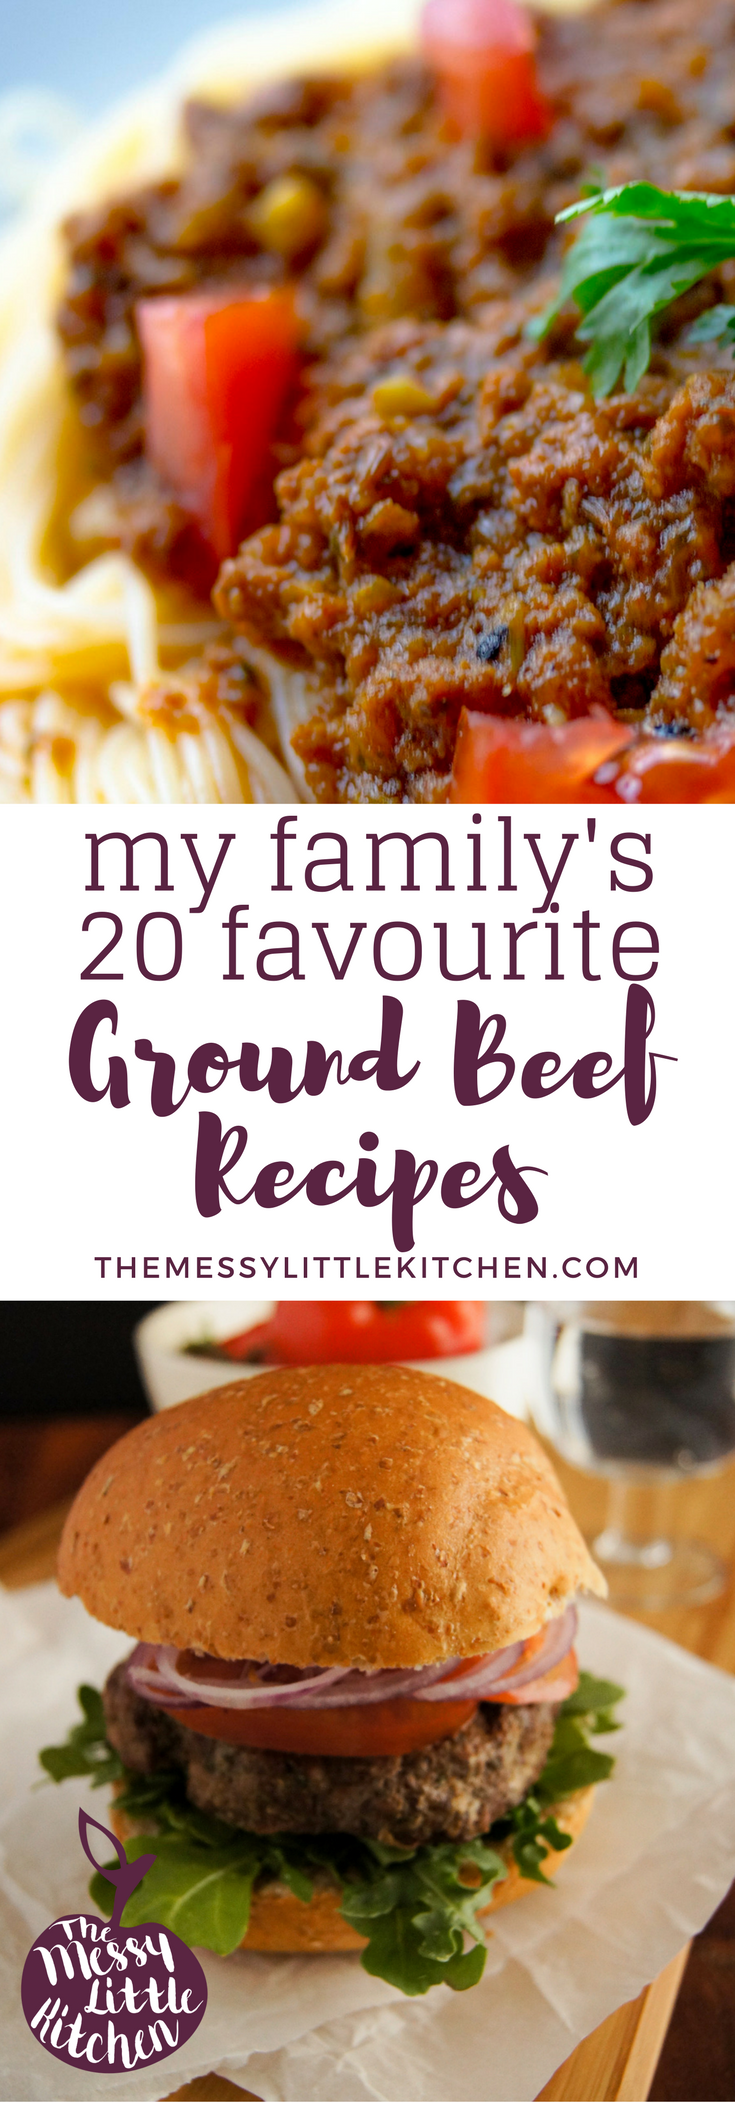 My Family's 15 Favorite Delicious & Easy Ground Beef Recipe